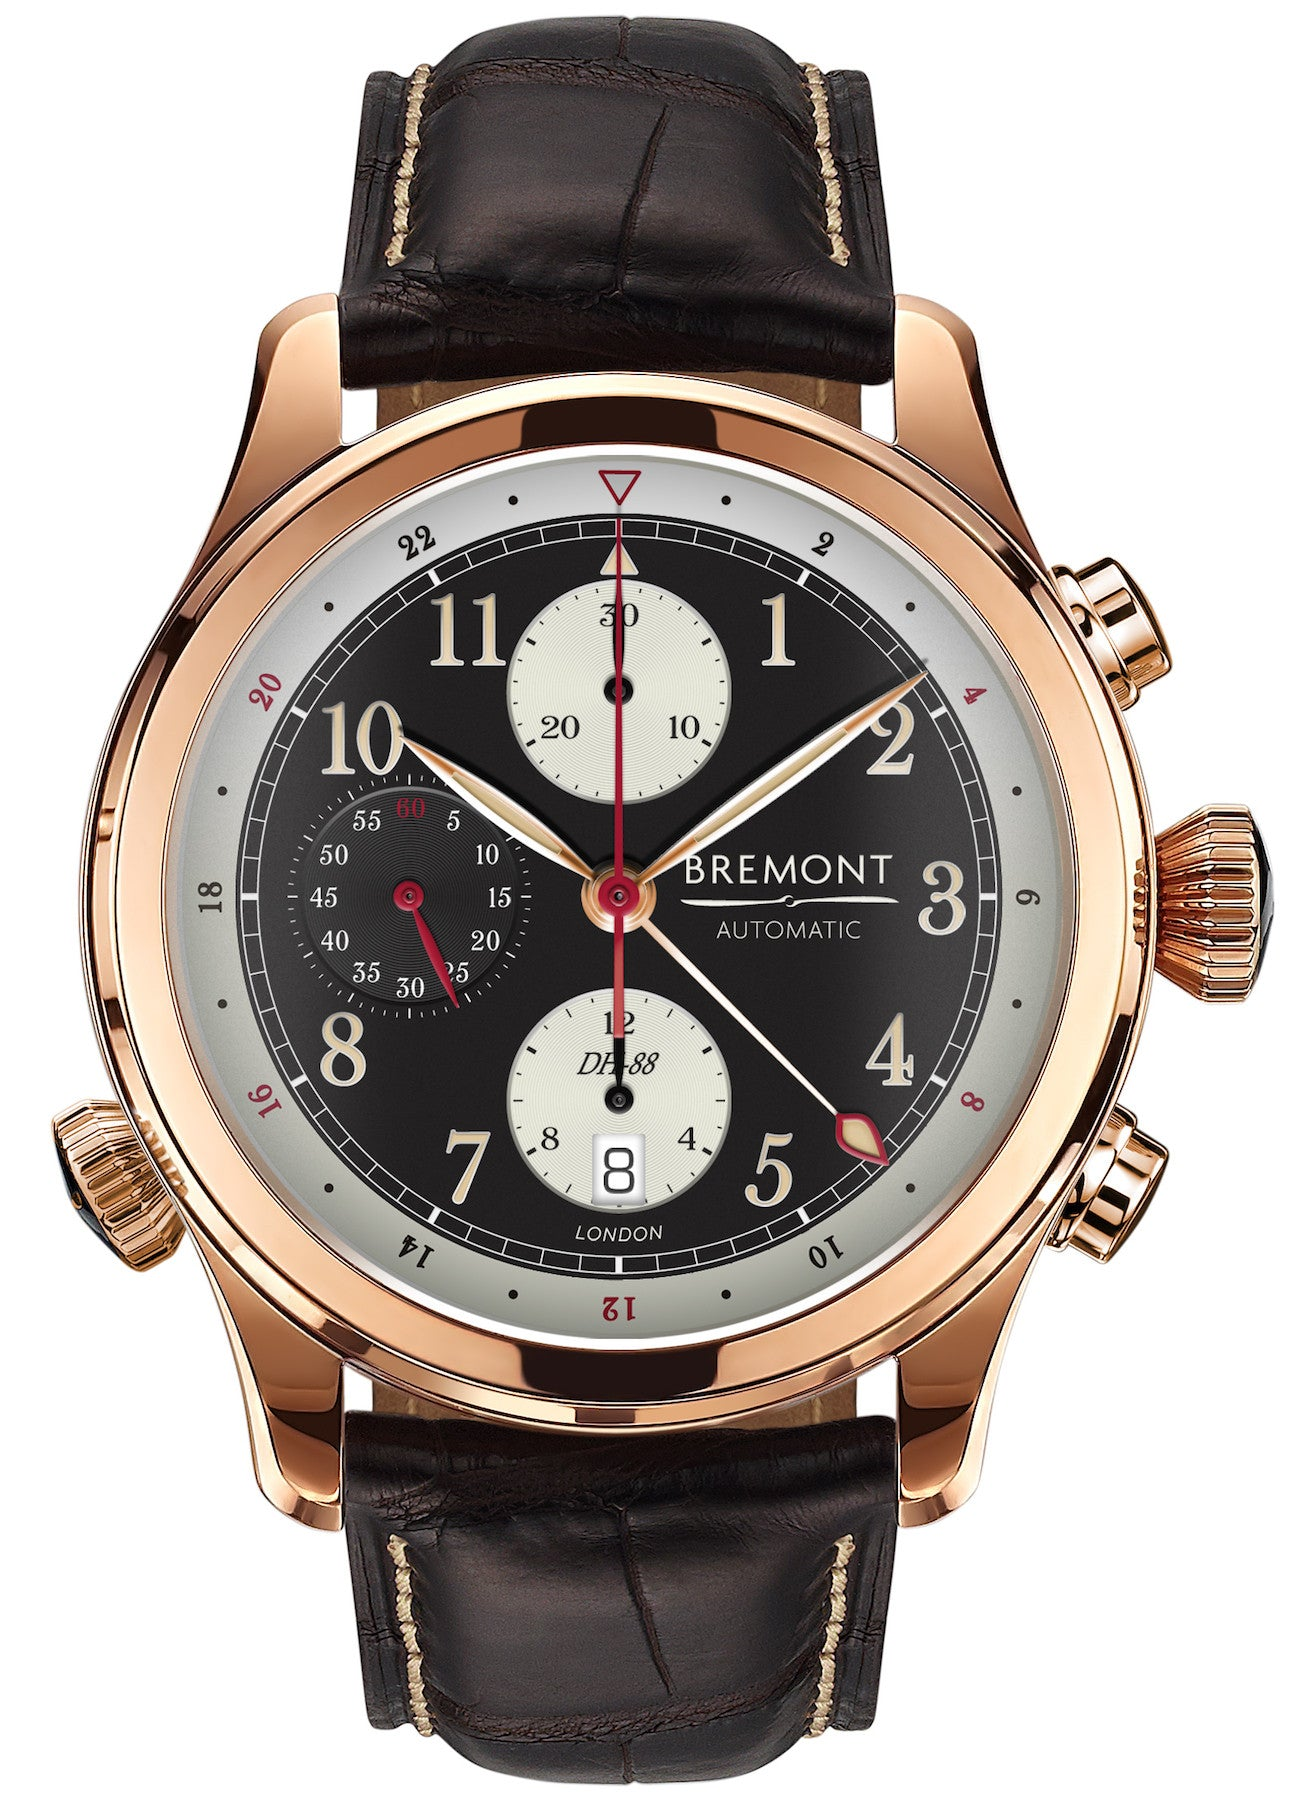 Limited Edition Birthday Collection: Bremont Watch DH-88 Rose Gold Limited Edition Pre-Order DH